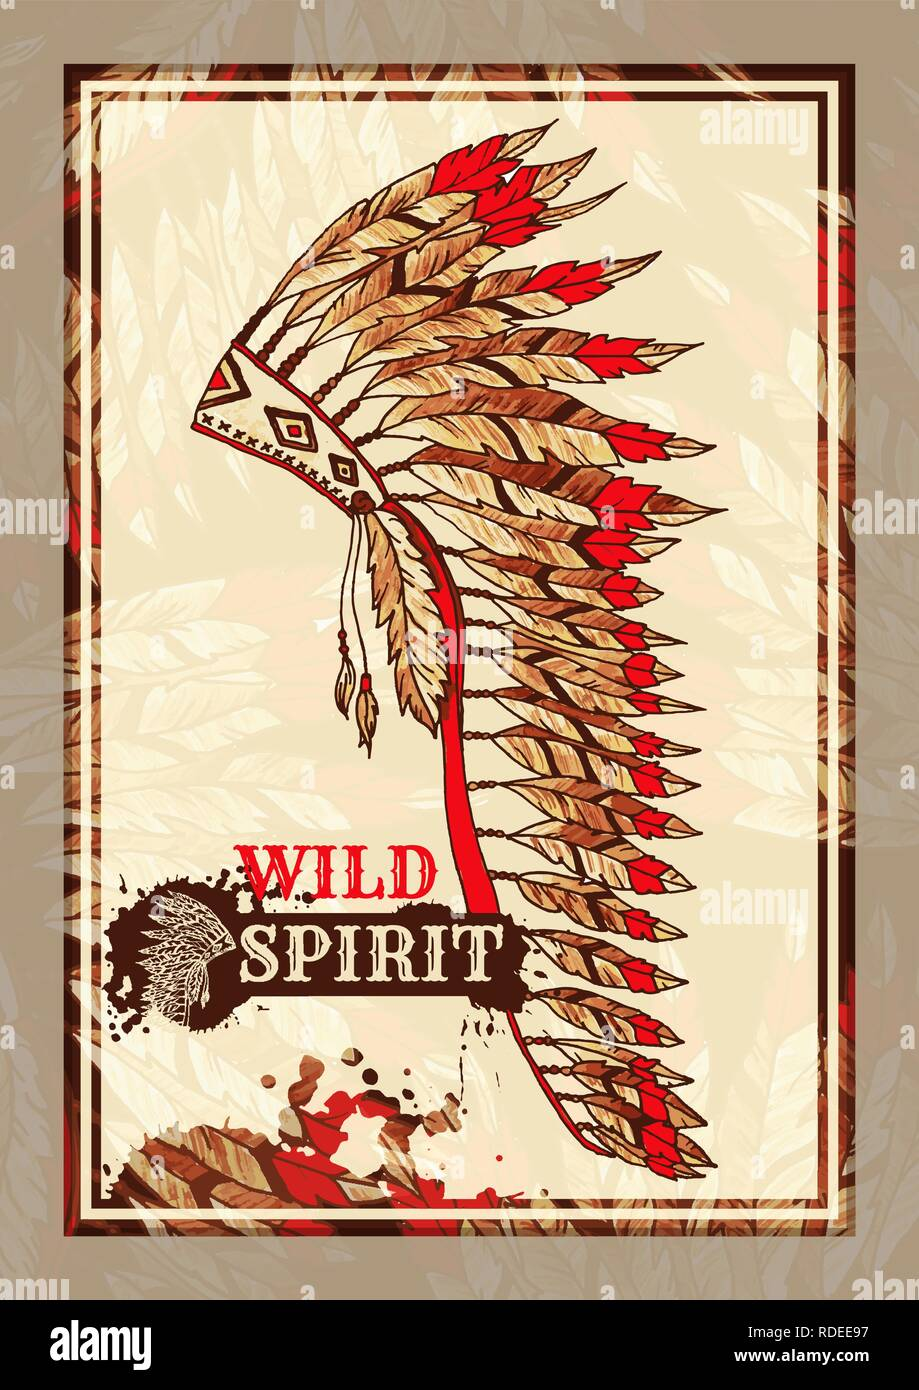 American painted War Bonnet Flyer or Vertical Poster for Tribal Party. Wild Spirit Feathers Warbonnet Hat. Native Indian Colorful Accessory. Halloween Costume Event Template. - Stock Image